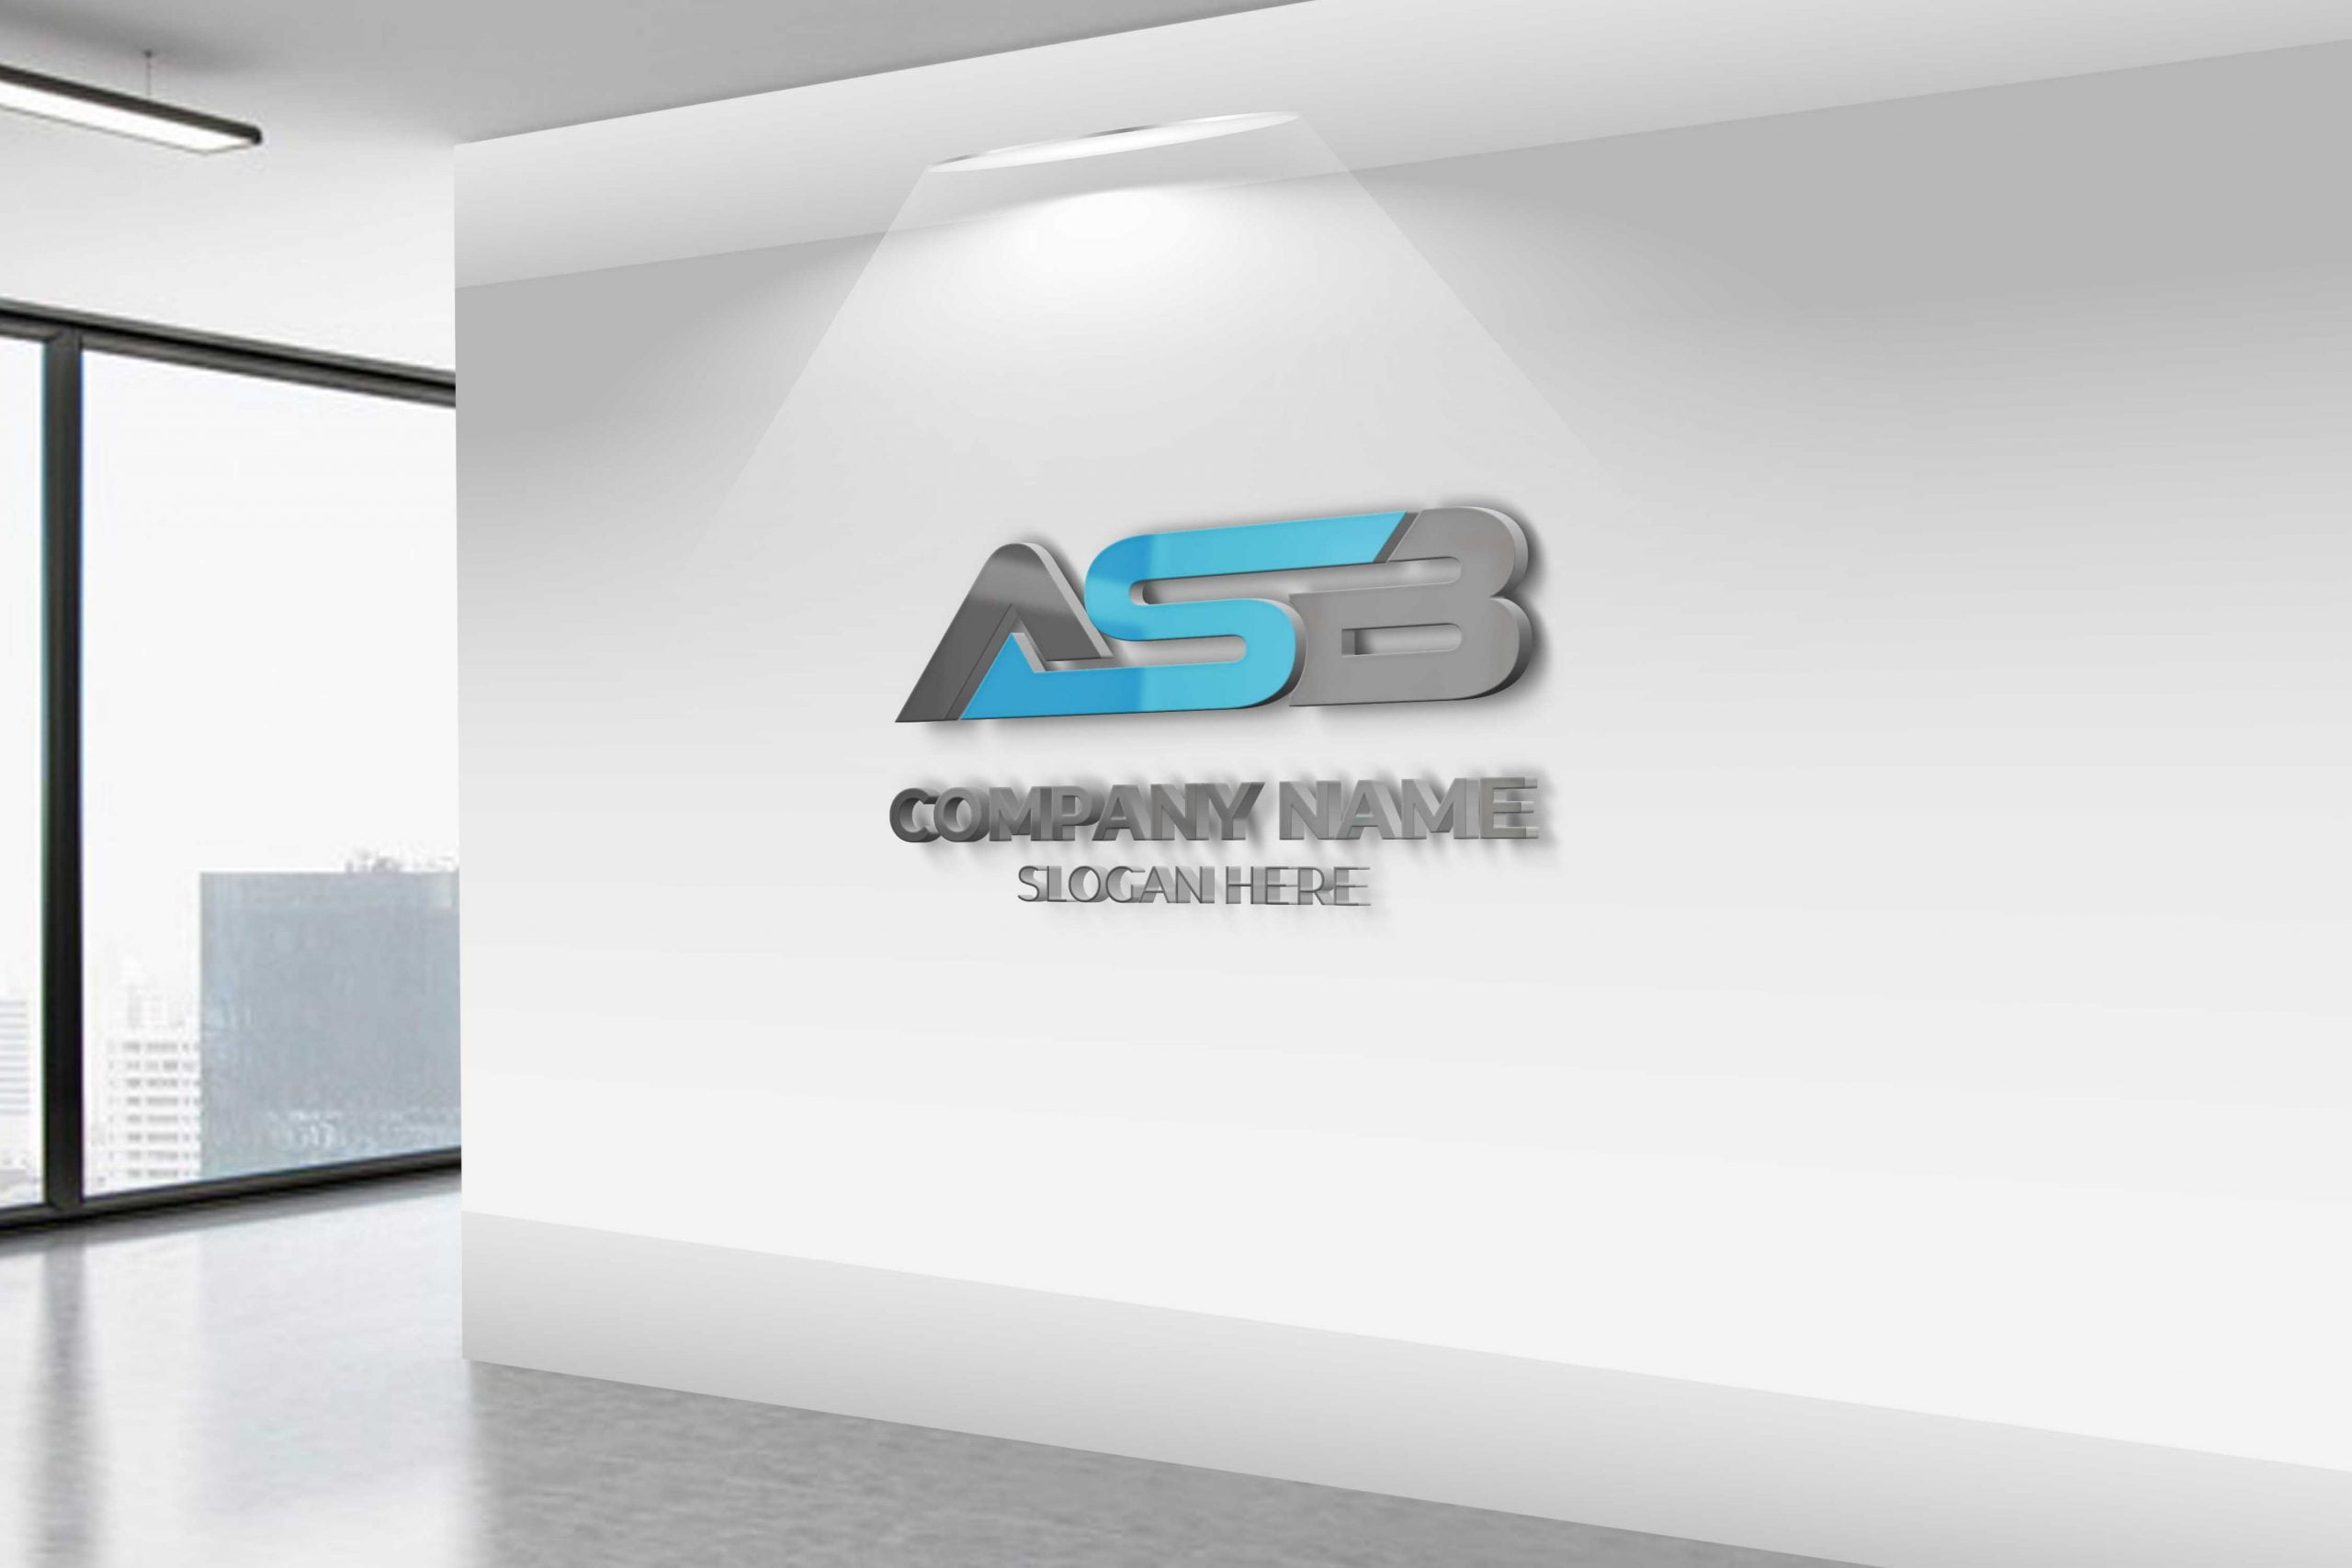 ASB LETTER LOGO DESIGN ON OFFICE WALL